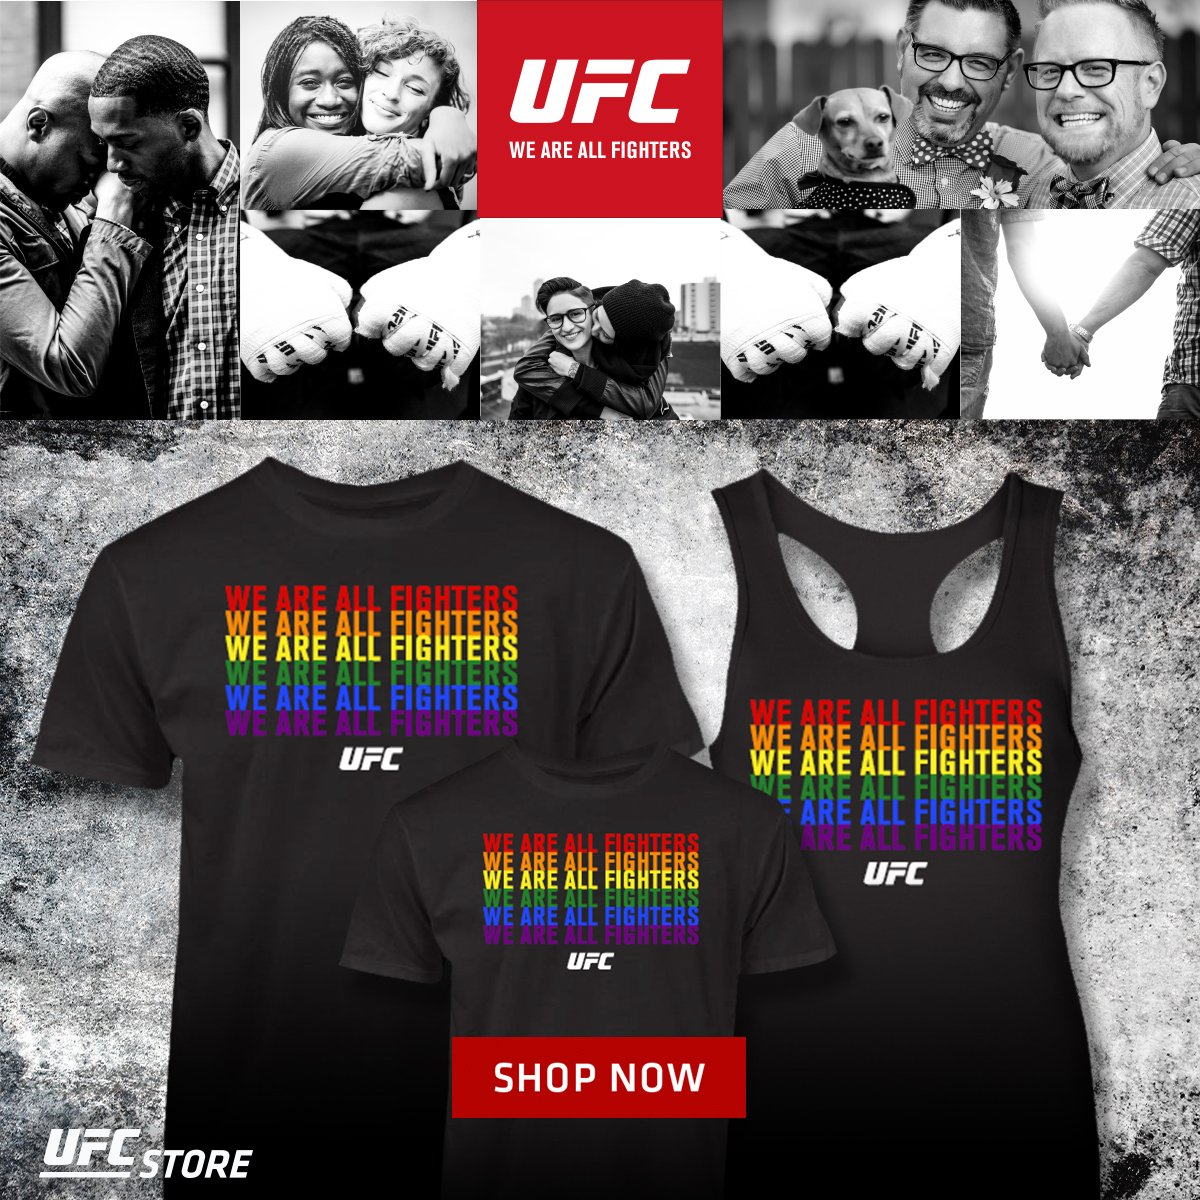 About UFC Store. The UFC Store has a virtually endless supply of gear, clothing and accessories for fans of the martial arts available online. The website, hereifilessl.ga, makes it easy to find clothing for men, women and children, in the sizes, colors and styles that available and match your tastes.